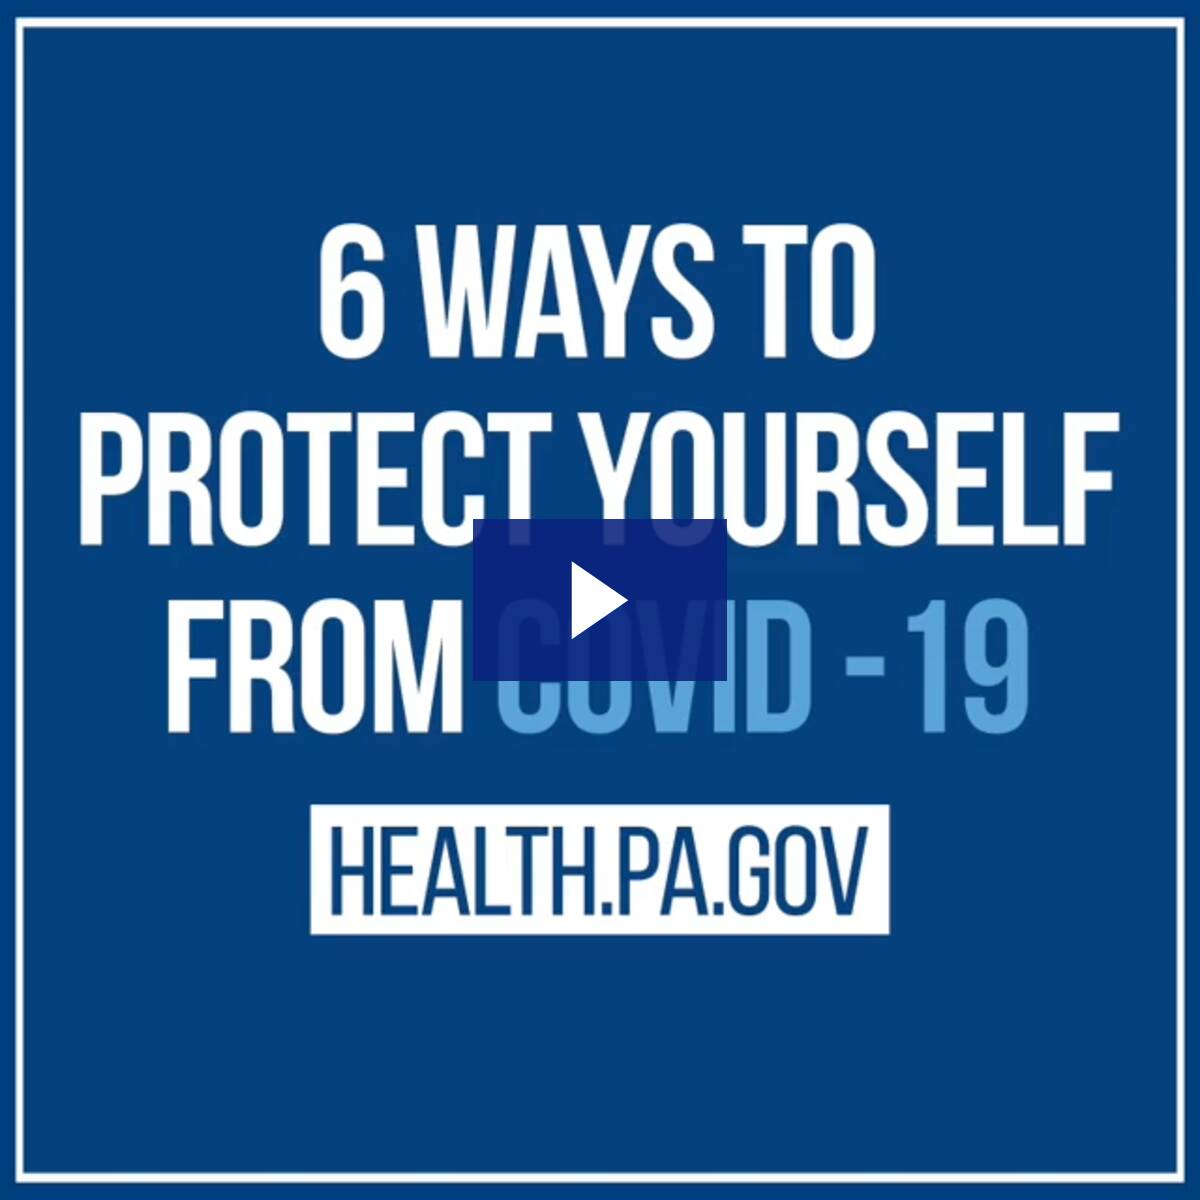 6 Ways to Protect Yourself from COVID-19